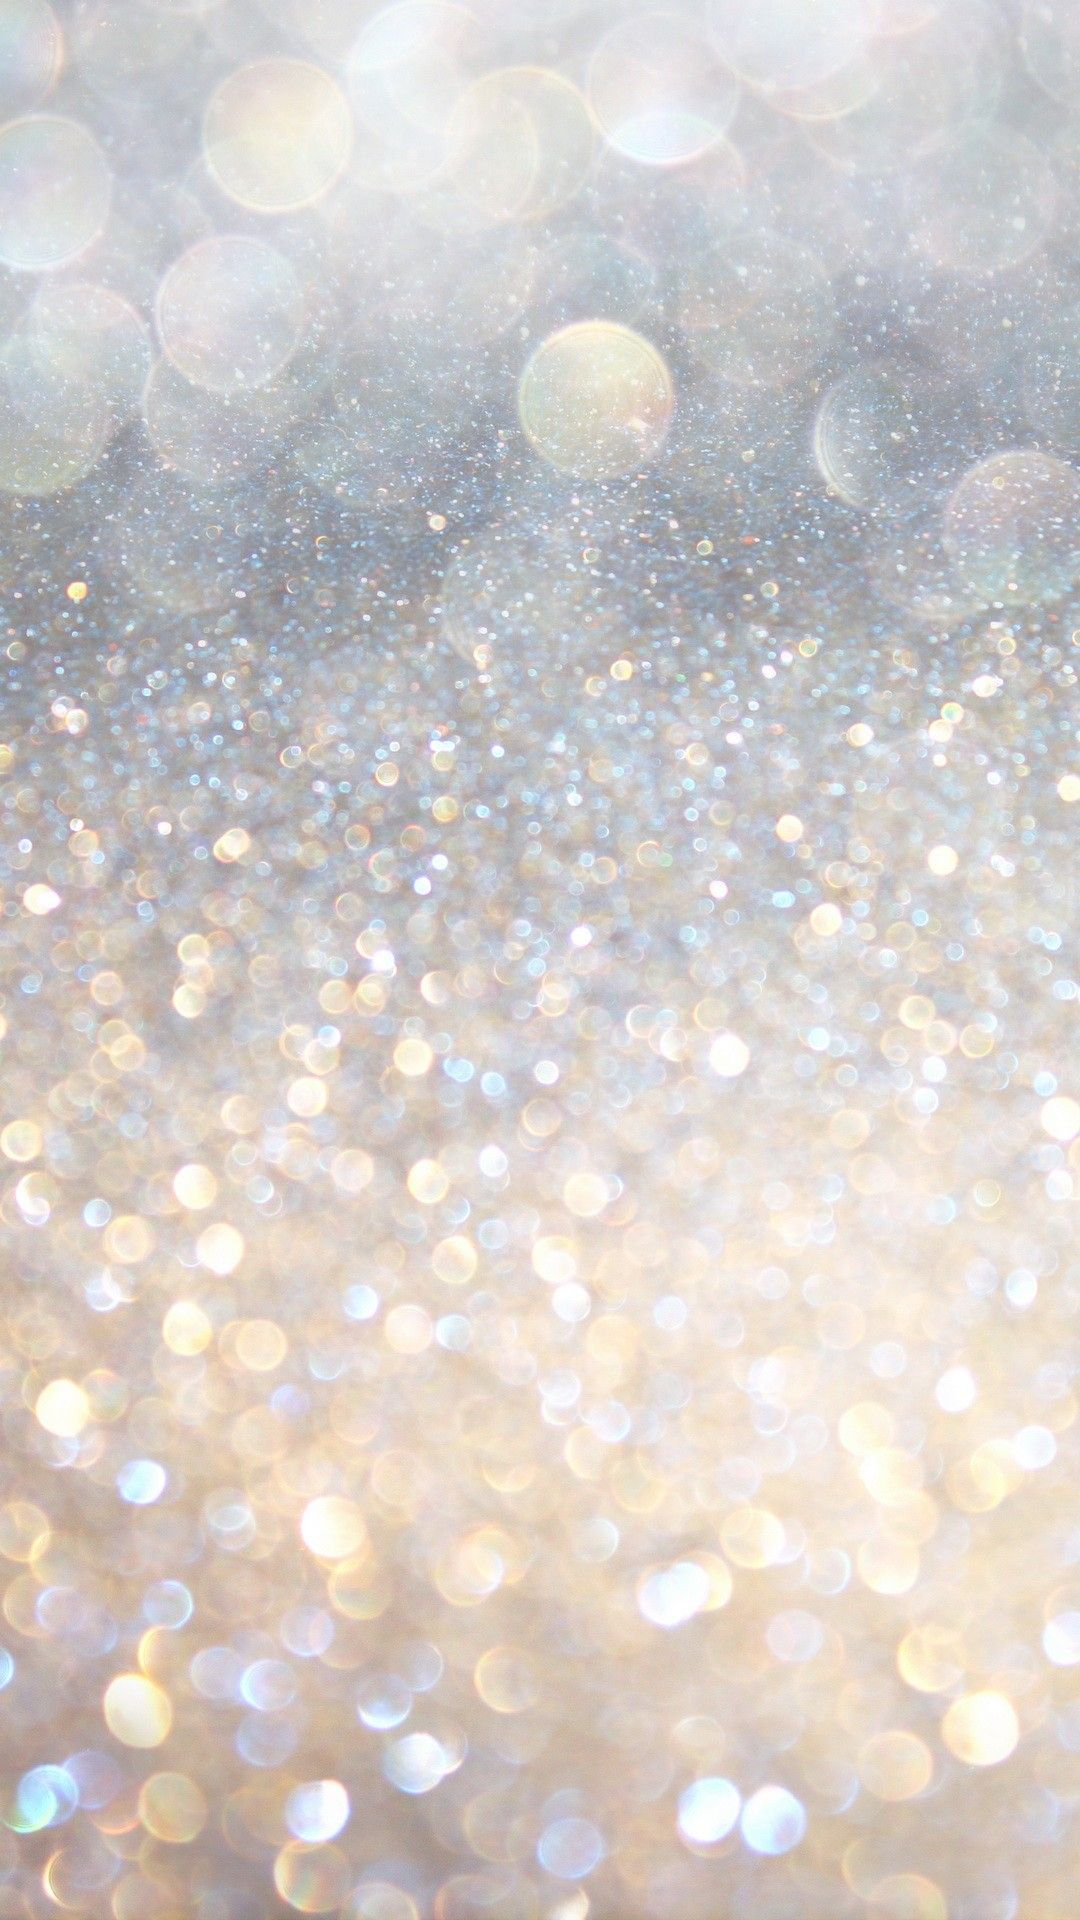 HASHTAGS gold silver grey gray glitter wallpaper